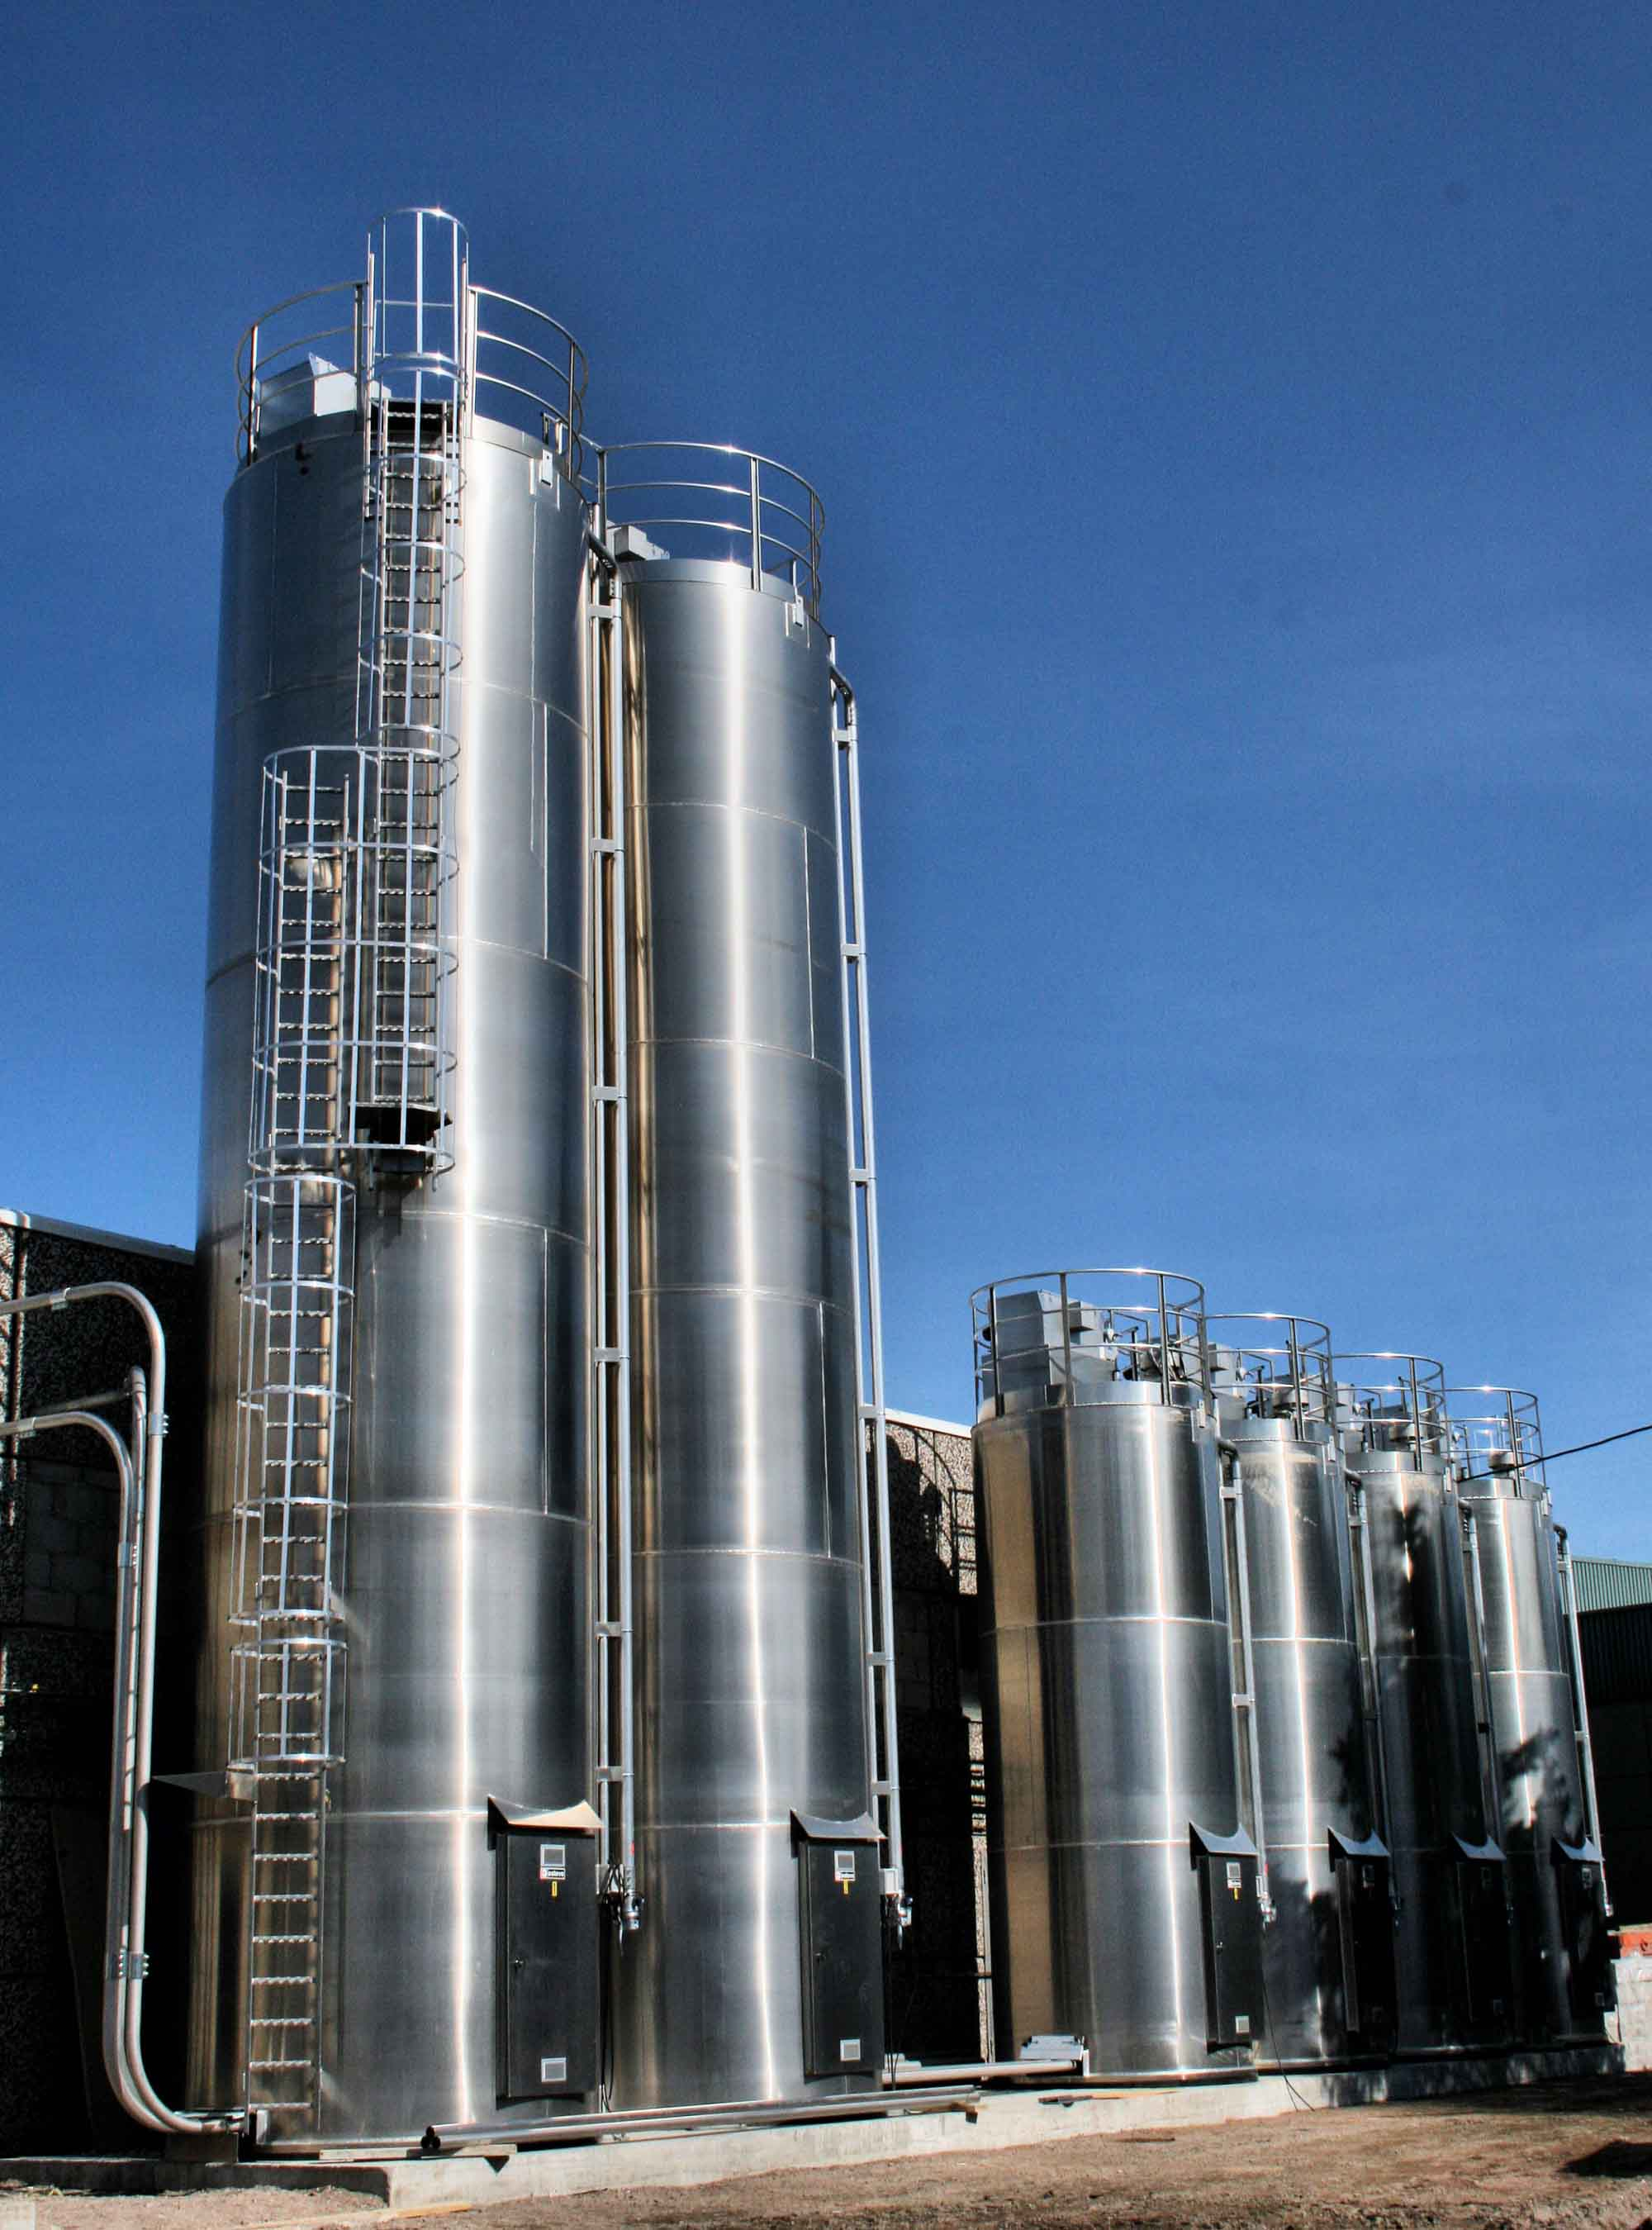 Steel Food Storage Silos Outside